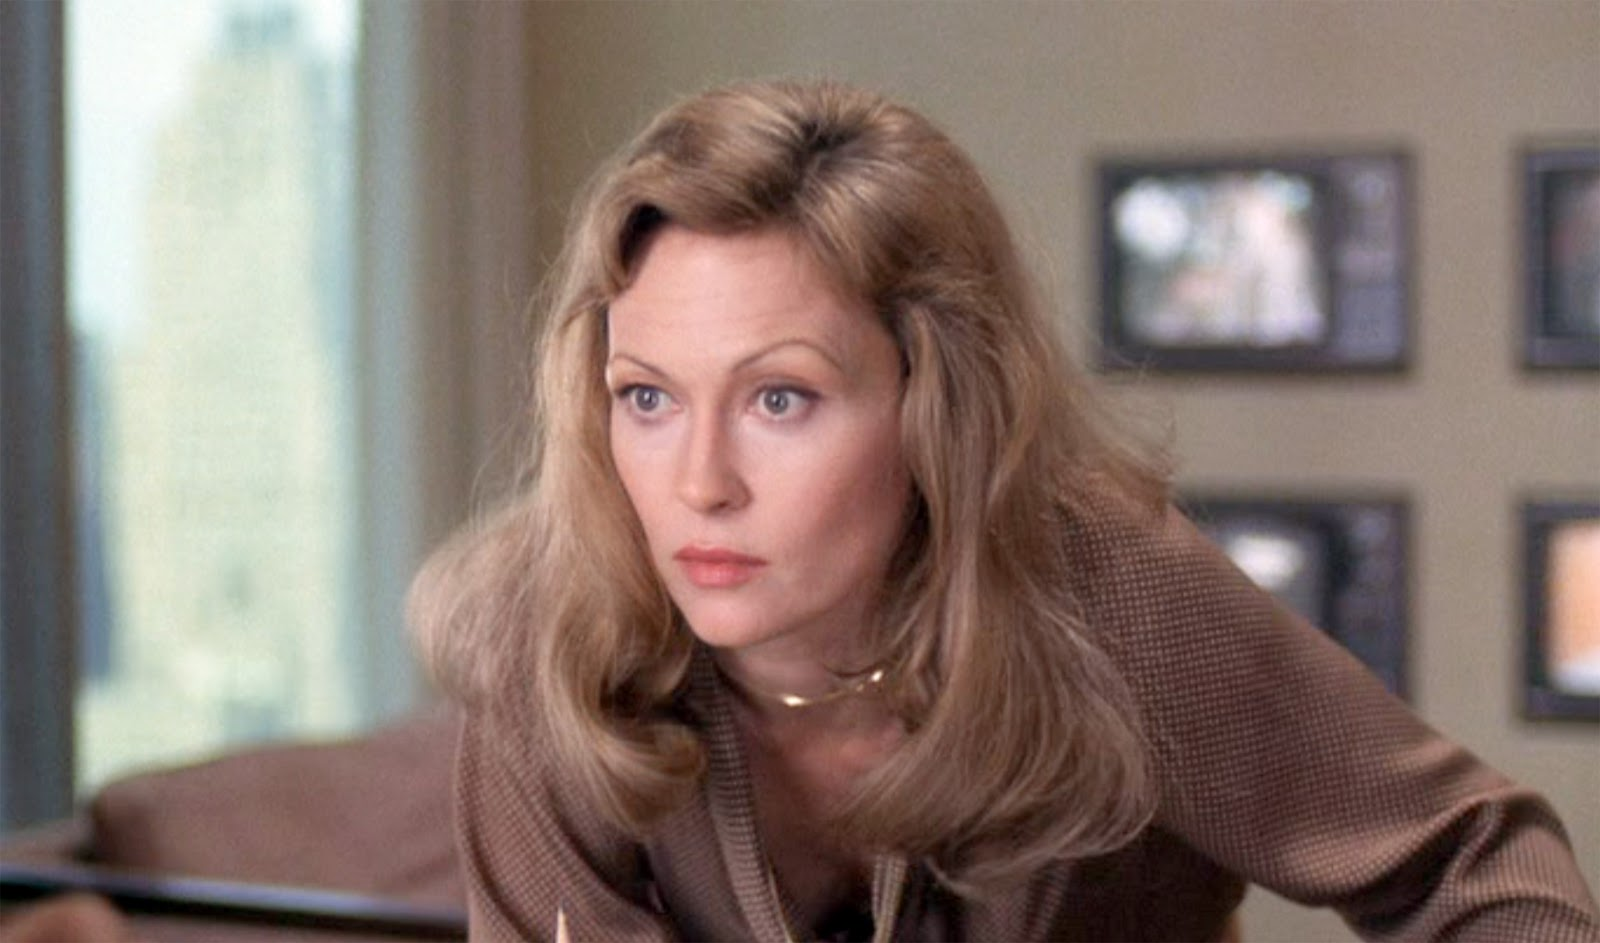 Faye dunaway network - The Movie Network Directed By Sidney Lumet And Written By Paddy Chayefsky Seen Here Faye Dunaway As Television Producer Diana Christensen